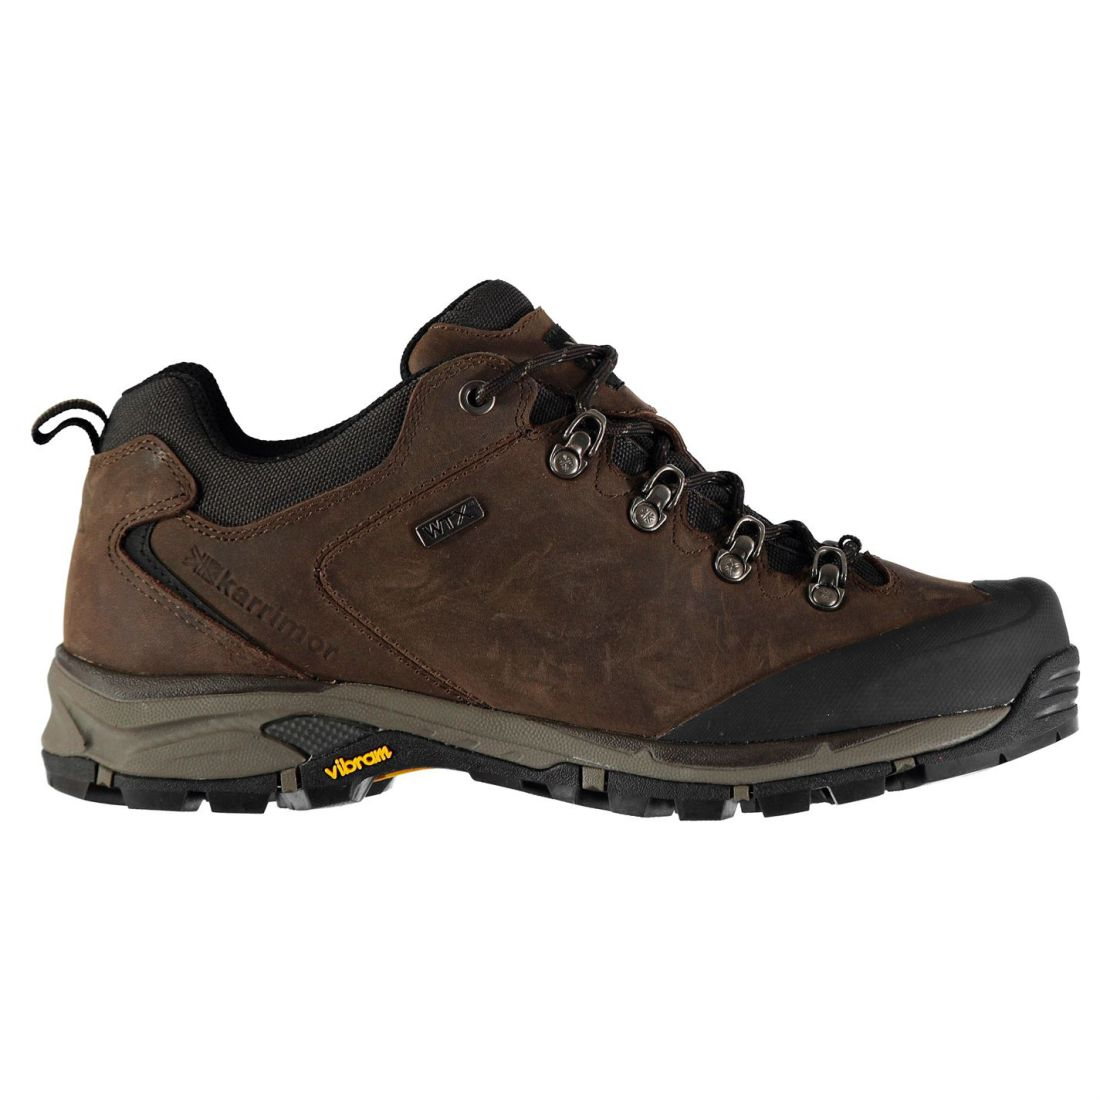 Karrimor Mens Cheetah Low WTX Walking shoes Waterproof Breathable Vibram Leather